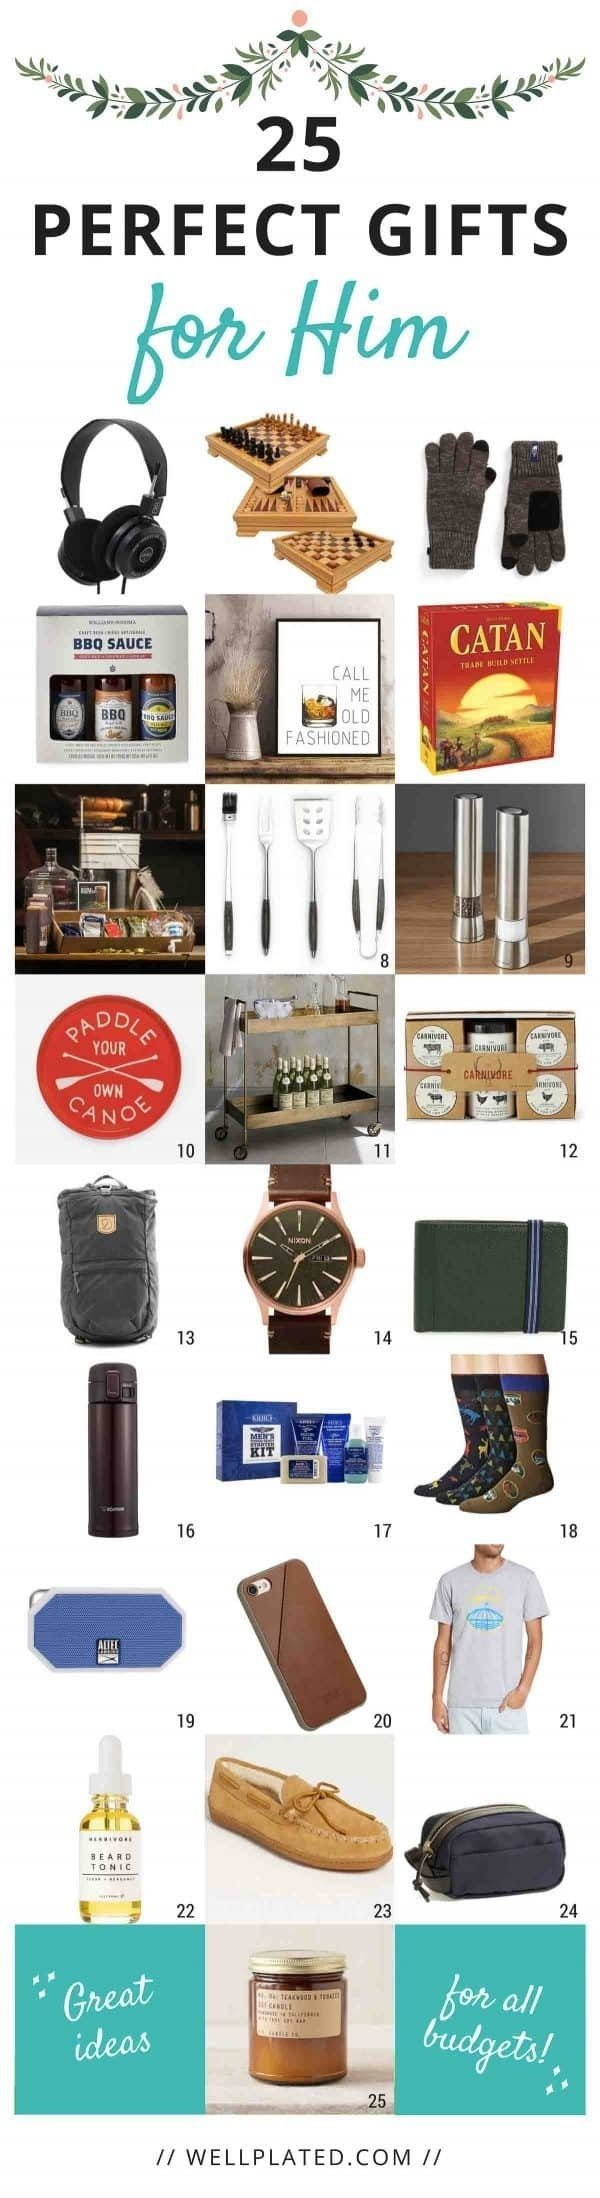 10 Fabulous Unique Gift Ideas For Dad 25 unique gift ideas for your husband dad boyfriend and more 2020